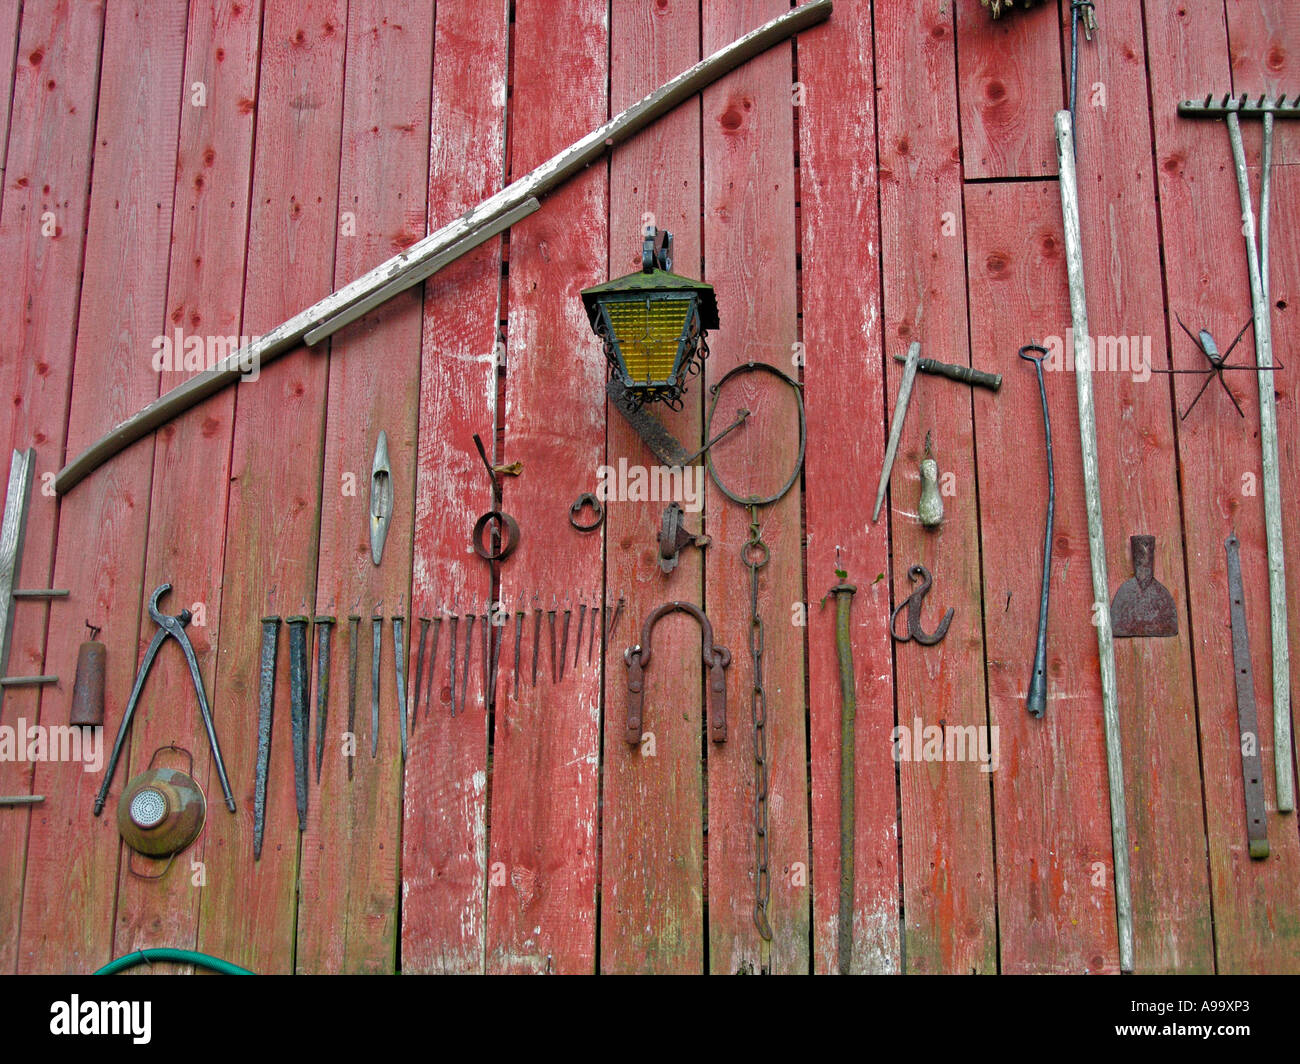 old iron tools and nails on wall of a red blockhouse log house - Stock Image